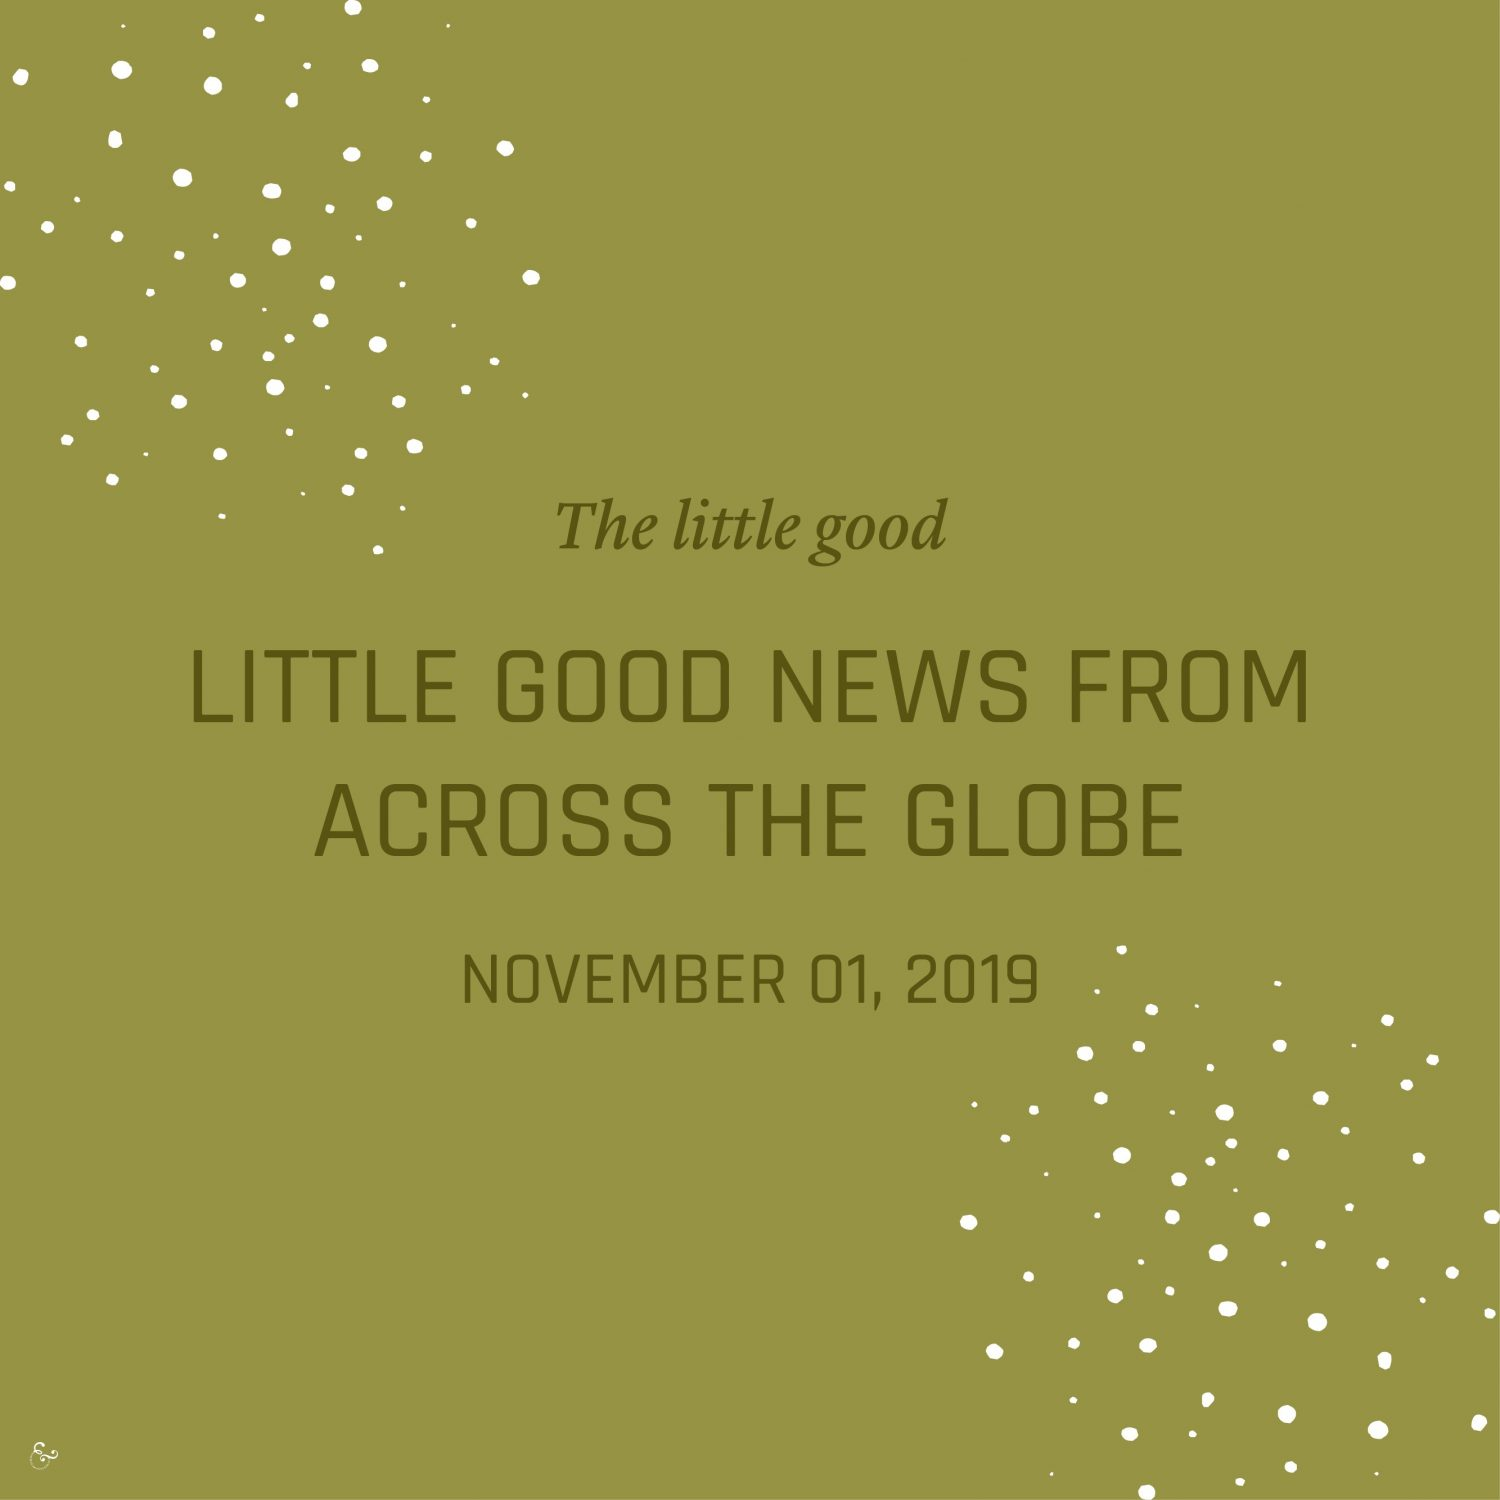 Good Positive Happy Environment Eco Green News of the Week - Nowhere & Everywhere Good News Stories 2019